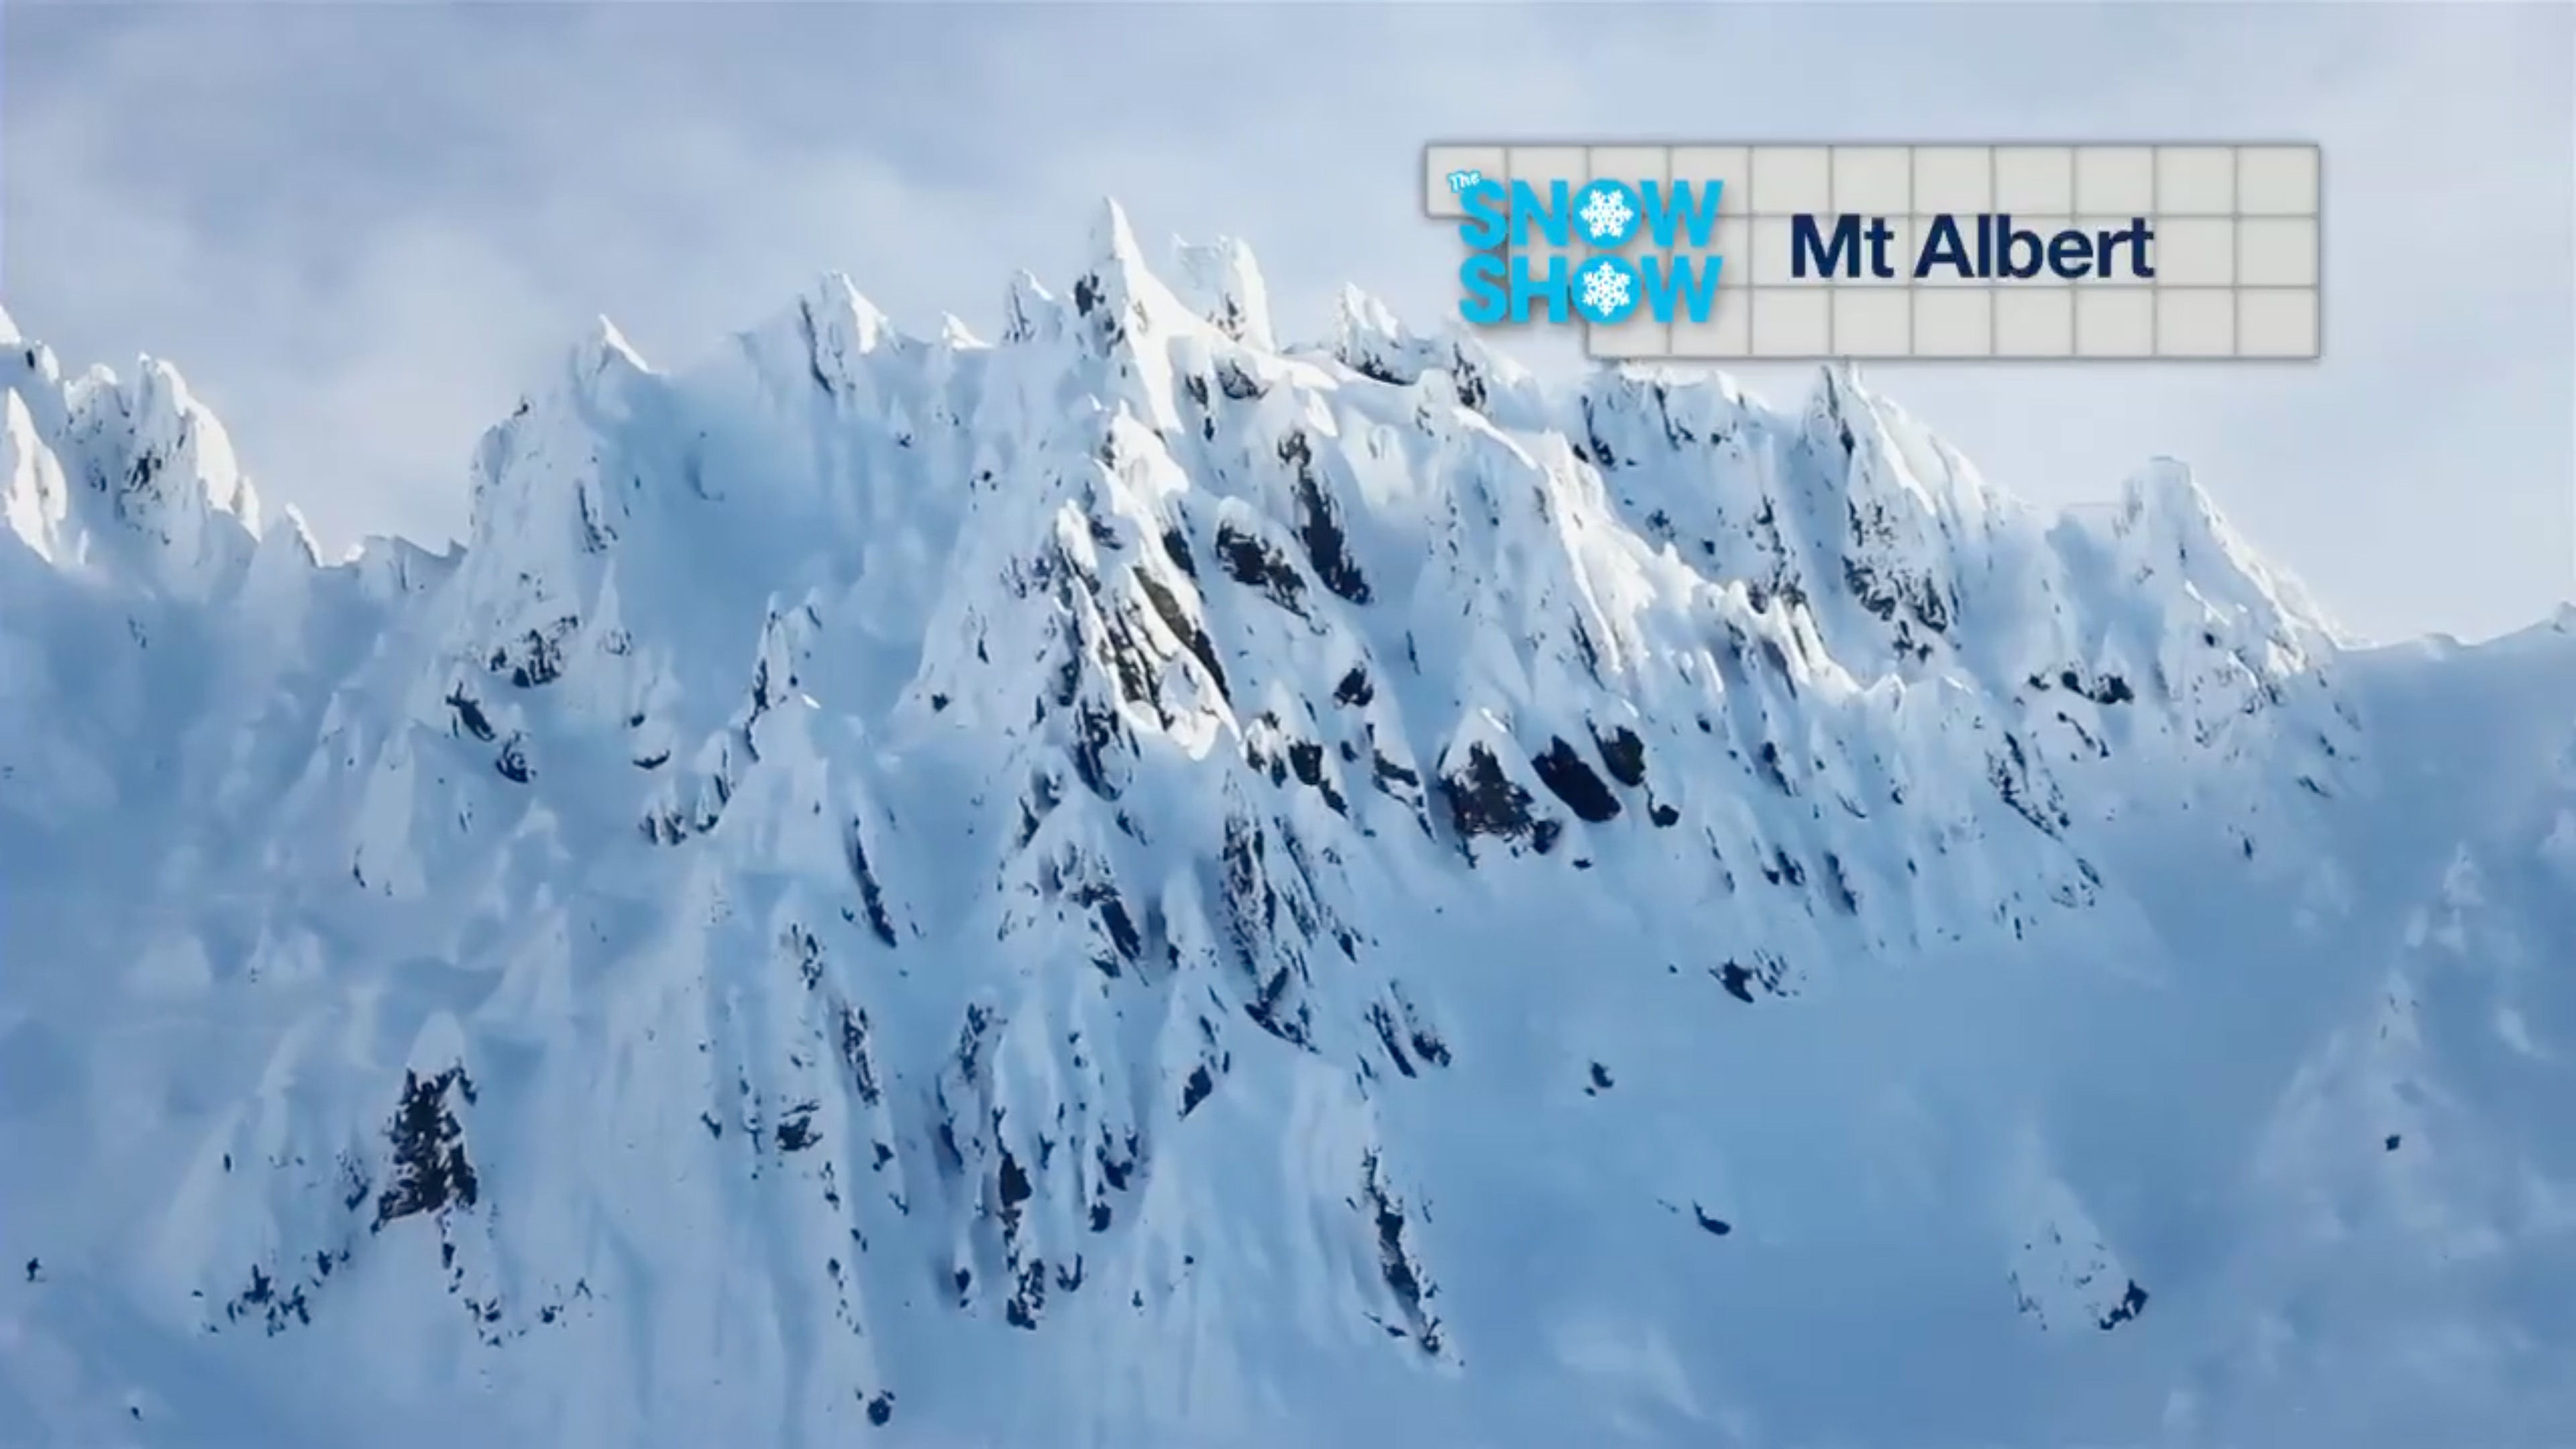 mt albert new zealand heli snowboarding destination